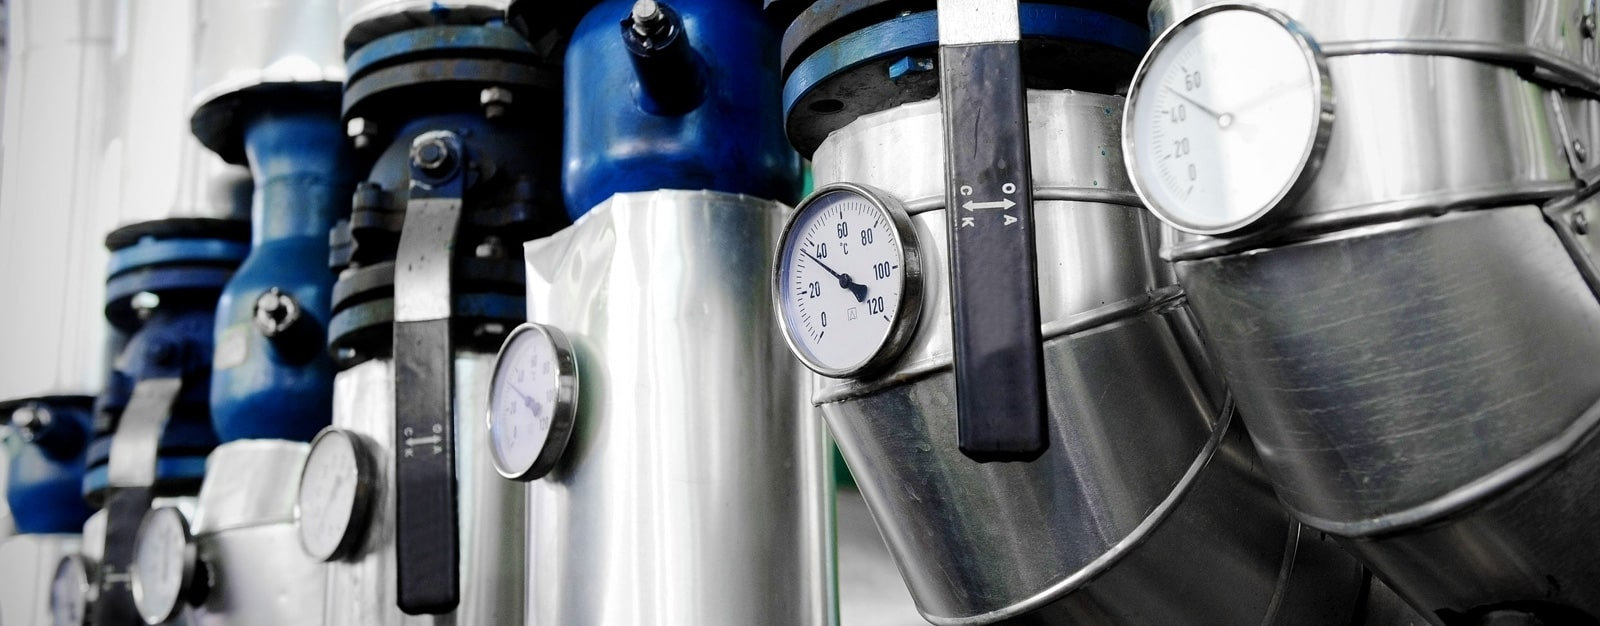 Commercial heating and plumbing pipework with isolation valves, lever valves and temperature gauges